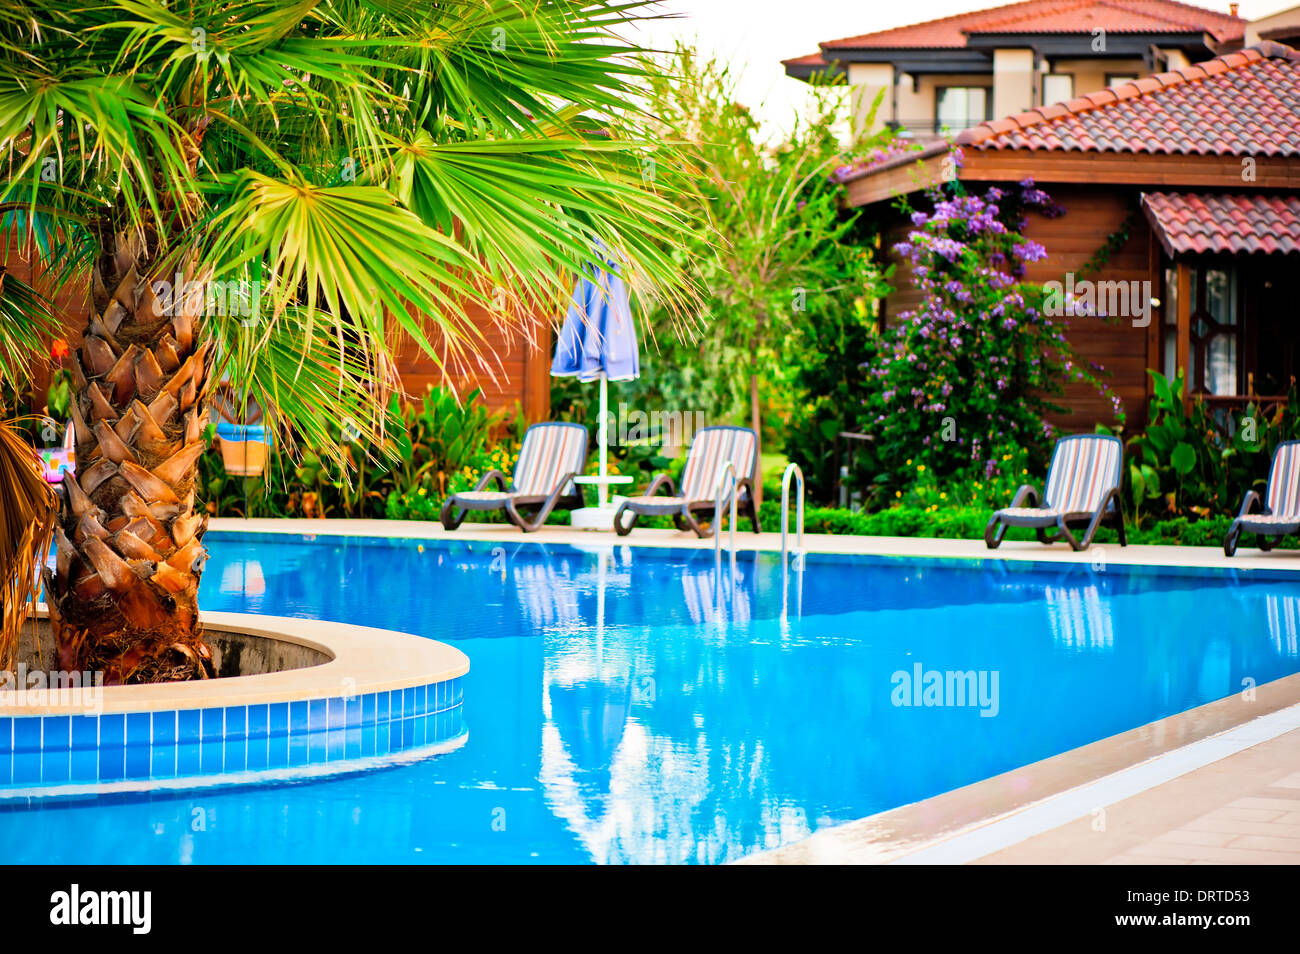 palm tree growing in the midst of the pool - Stock Image